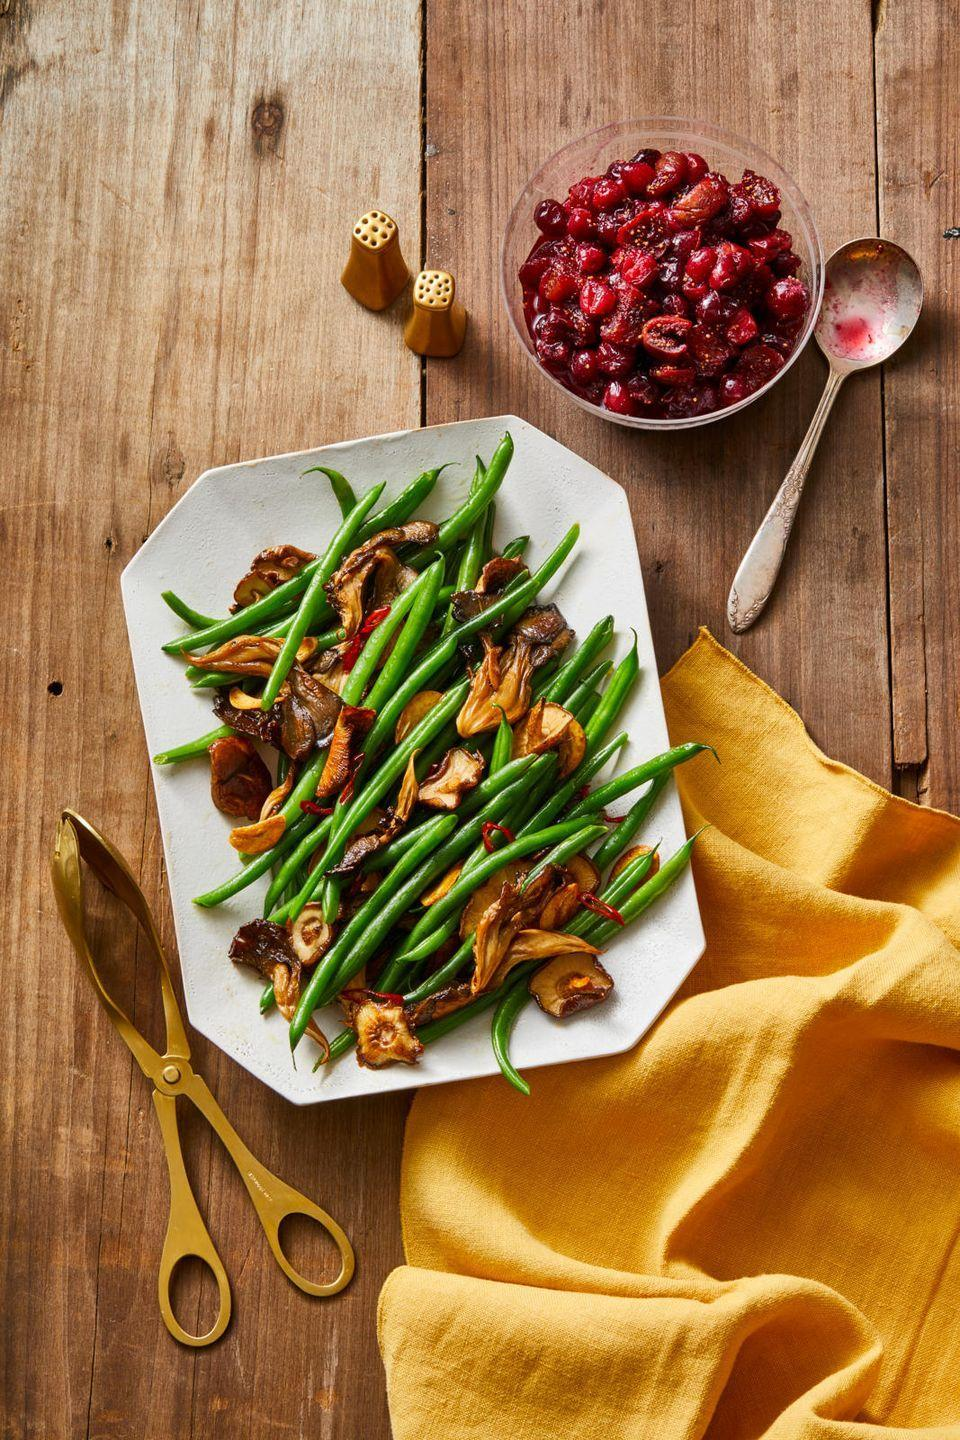 """<p>For the perfect veggie side to complement your prime rib, combine roasted mushrooms with blanched green beans — then toss them in mouthwatering chile-garlic butter.</p><p><em><a href=""""https://www.goodhousekeeping.com/food-recipes/a34360532/chile-garlic-green-beans-recipe/"""" rel=""""nofollow noopener"""" target=""""_blank"""" data-ylk=""""slk:Get the recipe for Mushroom and Chile-Garlic Green Beans »"""" class=""""link rapid-noclick-resp"""">Get the recipe for Mushroom and Chile-Garlic Green Beans »</a></em> </p>"""